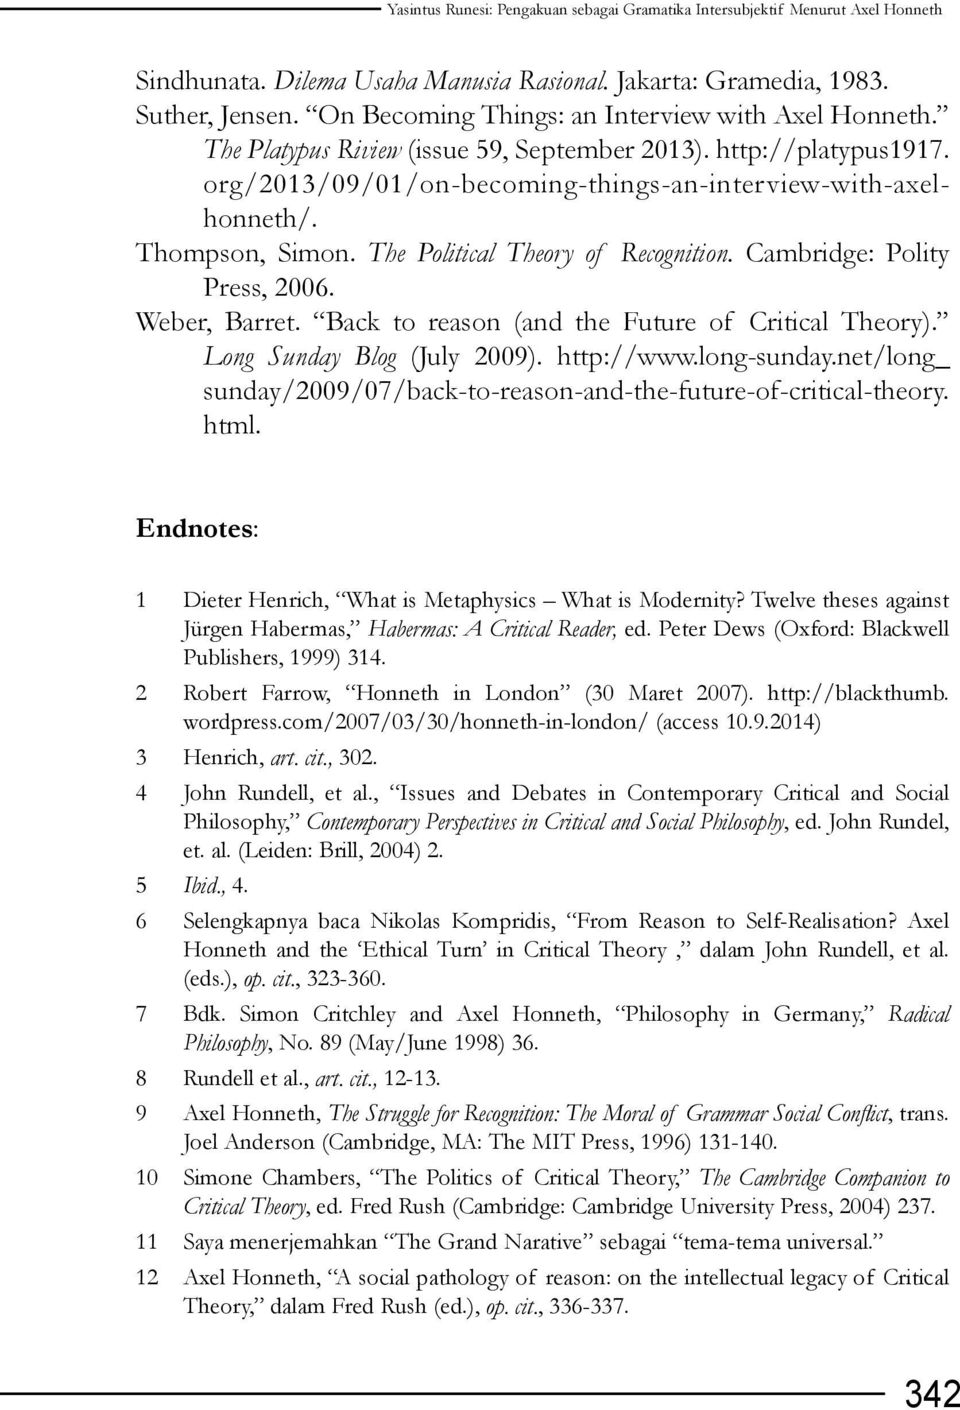 Thompson, Simon. The Political Theory of Recognition. Cambridge: Polity Press, 2006. Weber, Barret. Back to reason (and the Future of Critical Theory). Long Sunday Blog (July 2009). http://www.